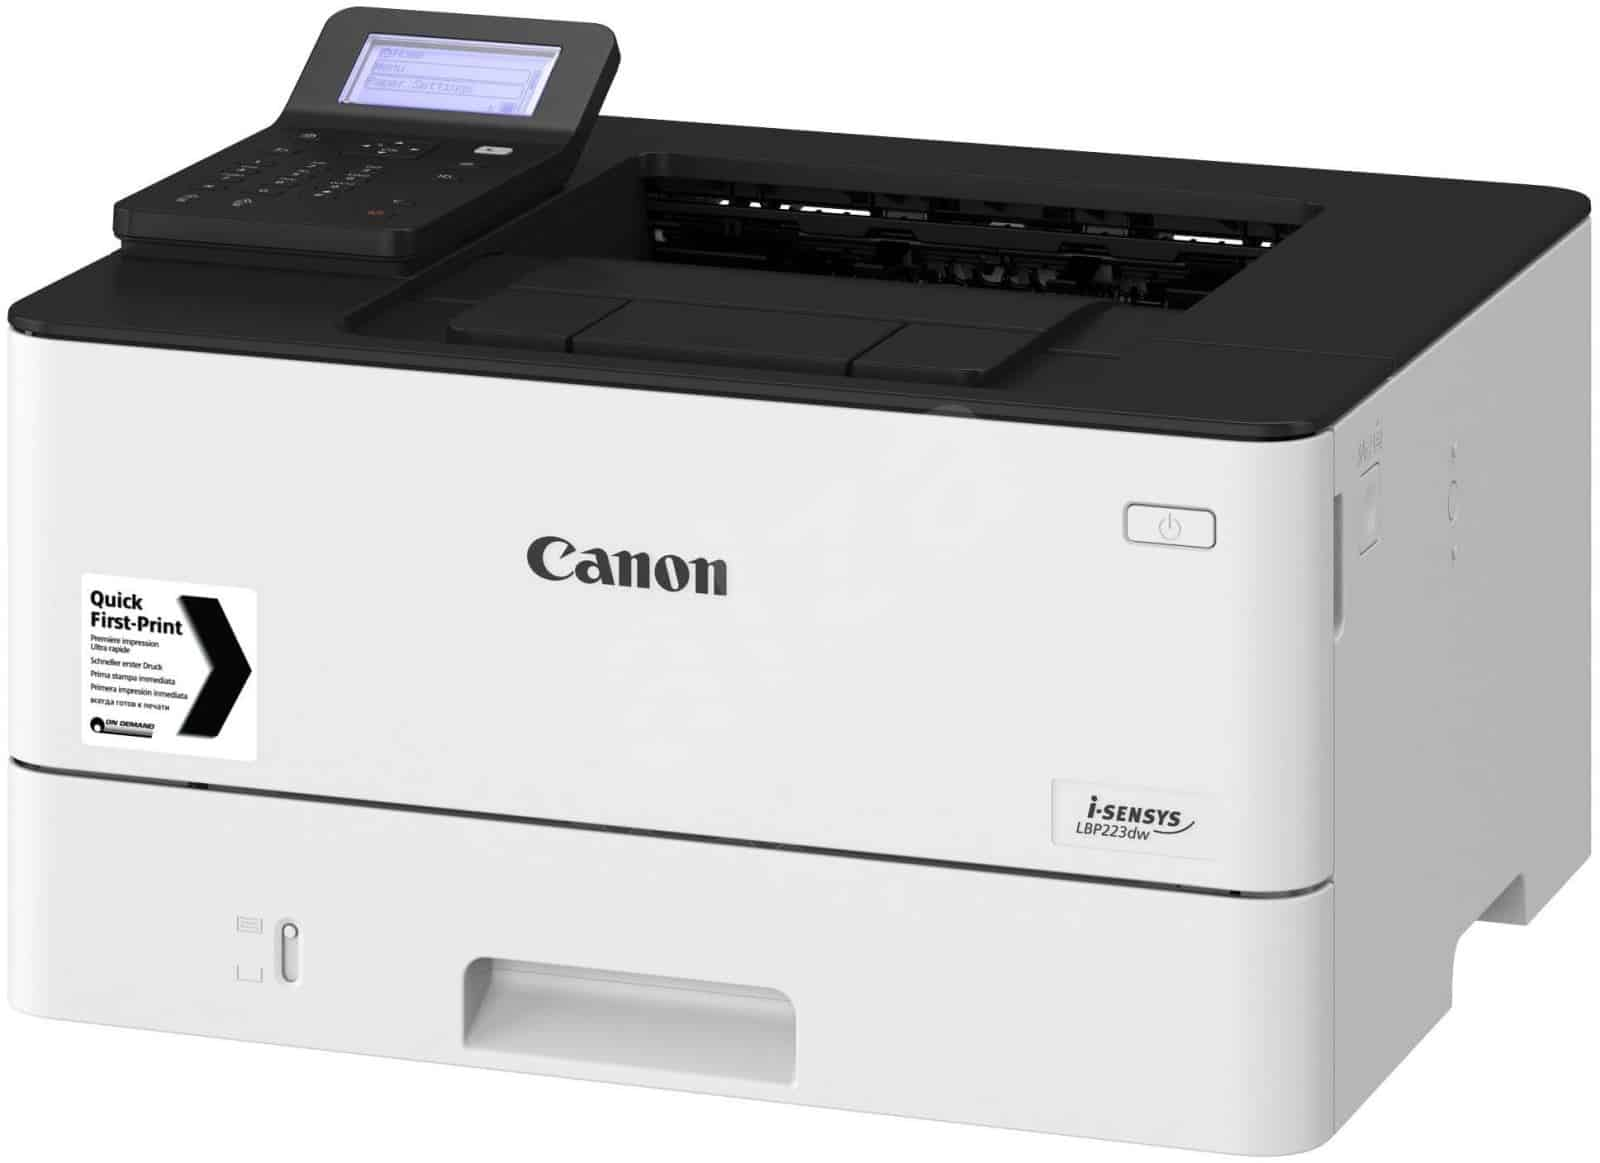 Canon 223dw la may in 2 mat tu dong gia re